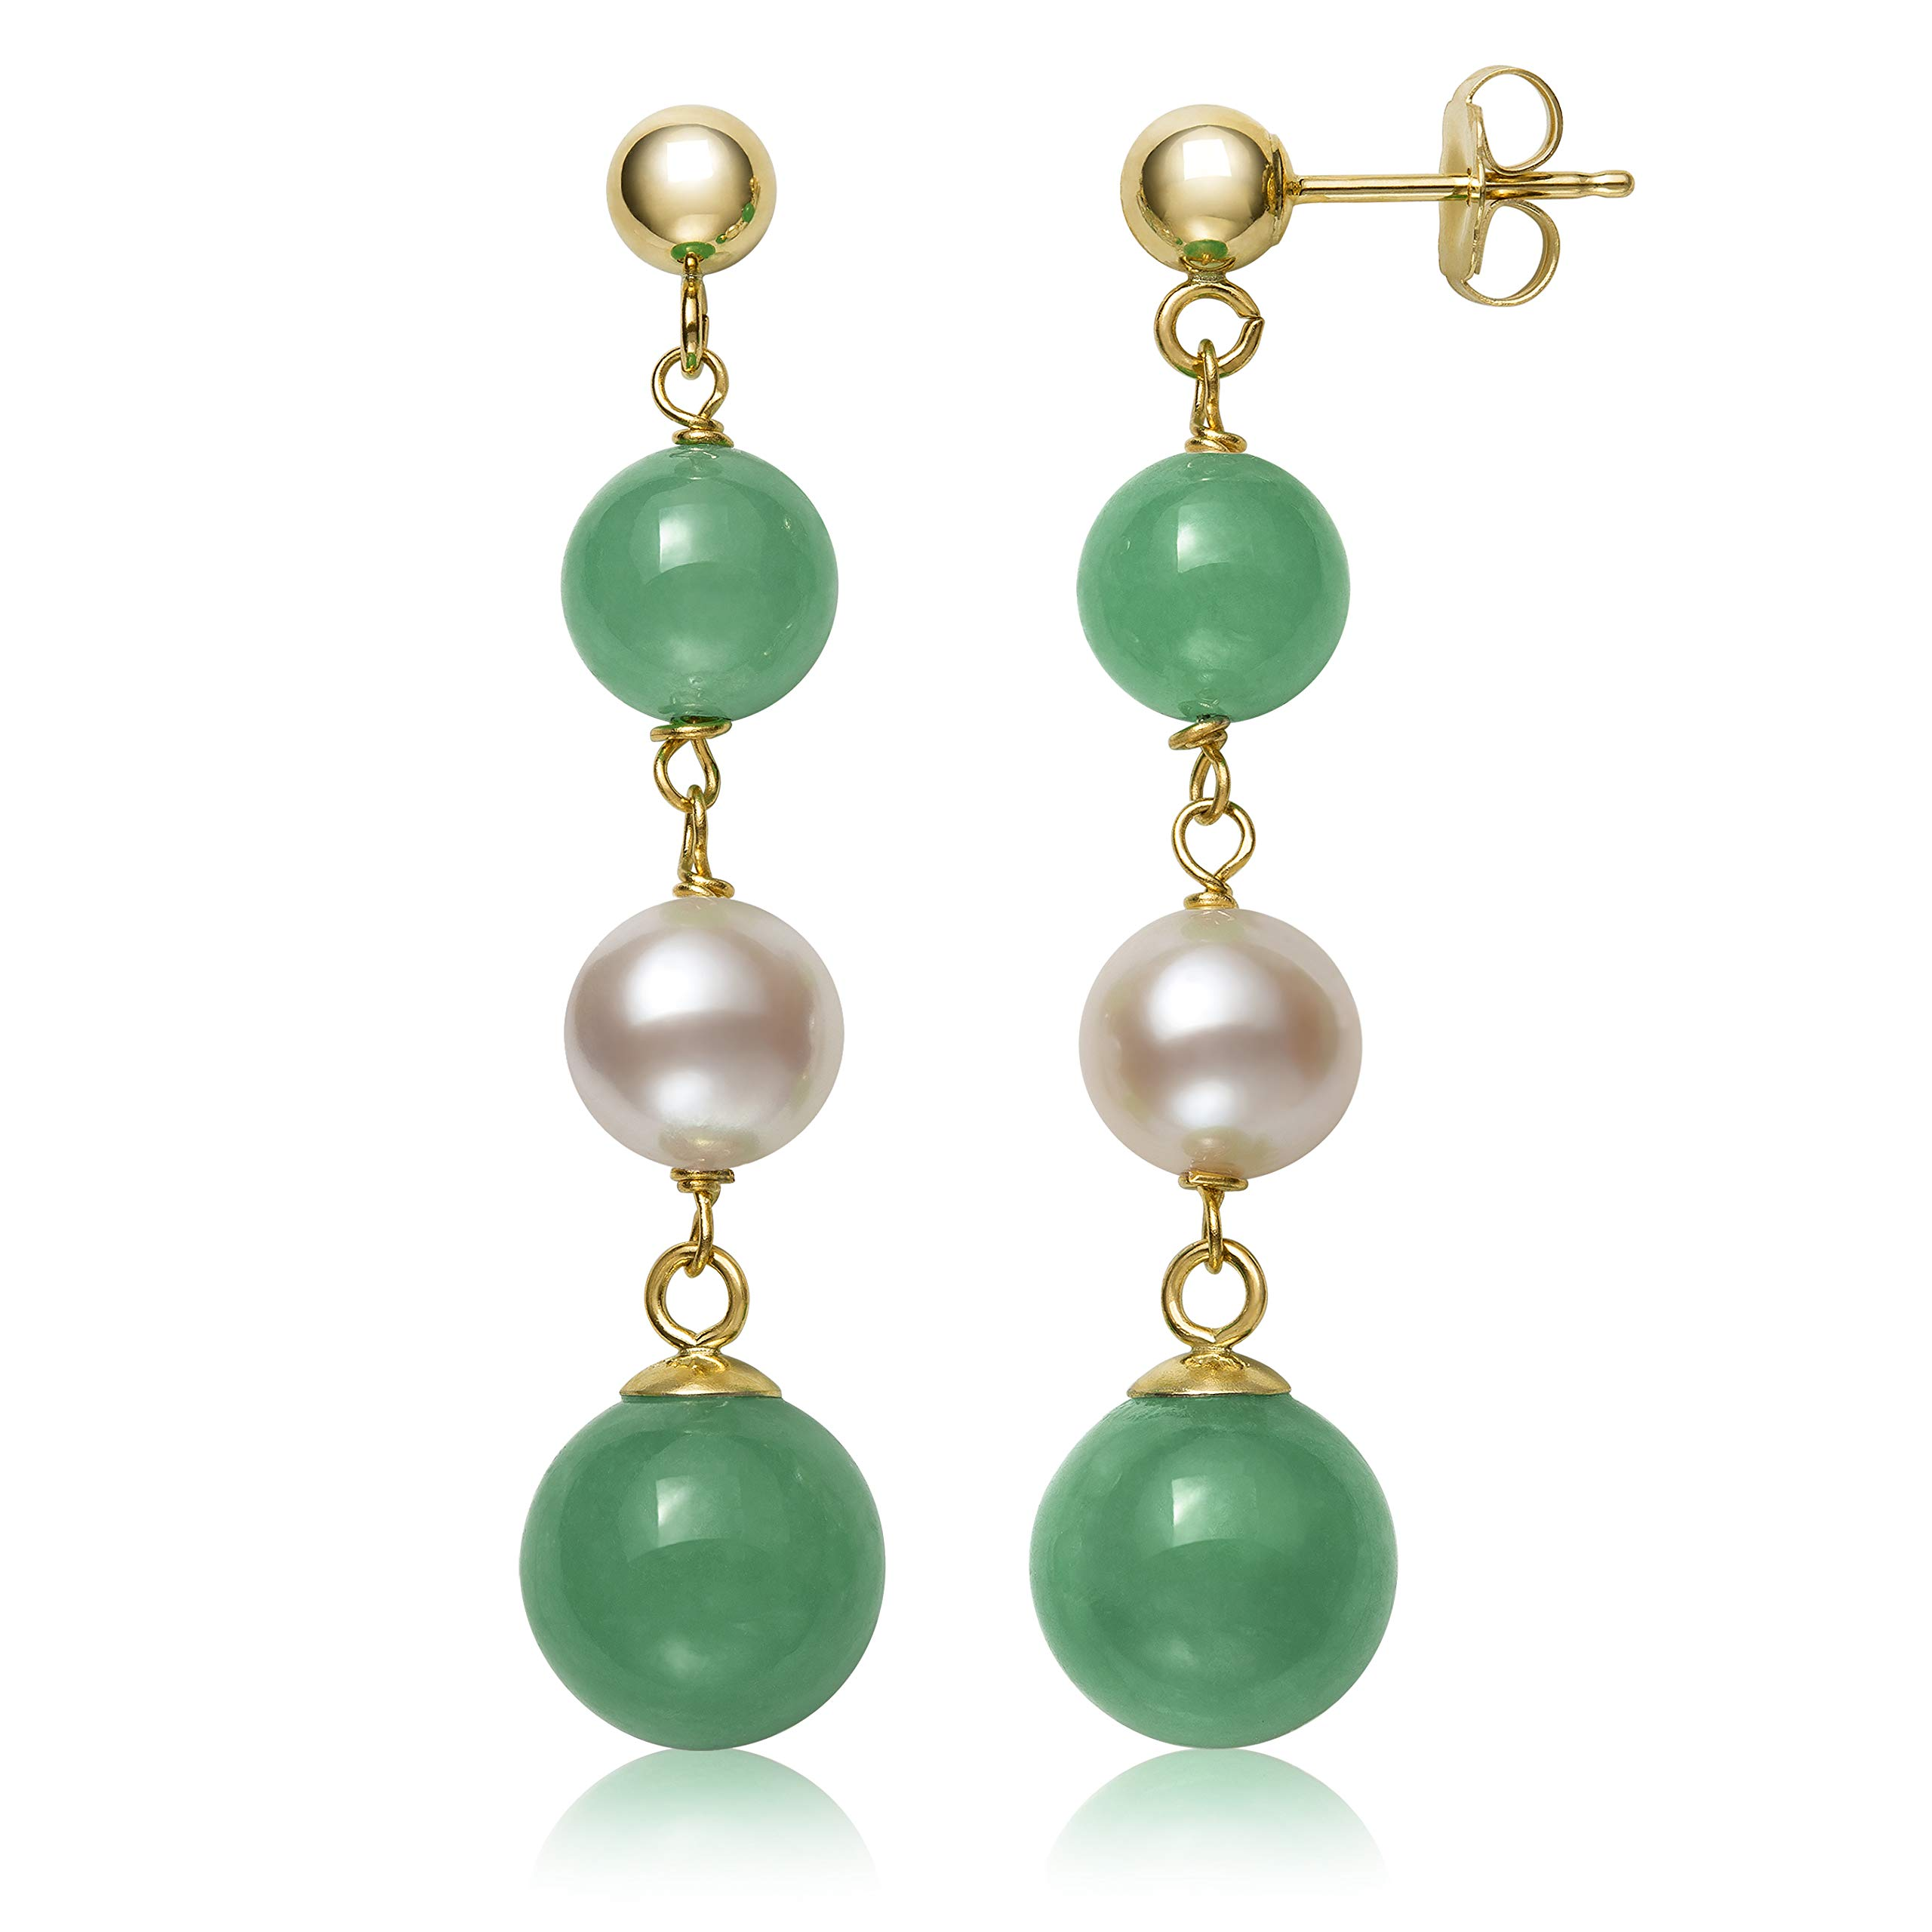 14k Yellow Gold Natural Cultured Freshwater Pearl and Green Jade Dangle Earrings